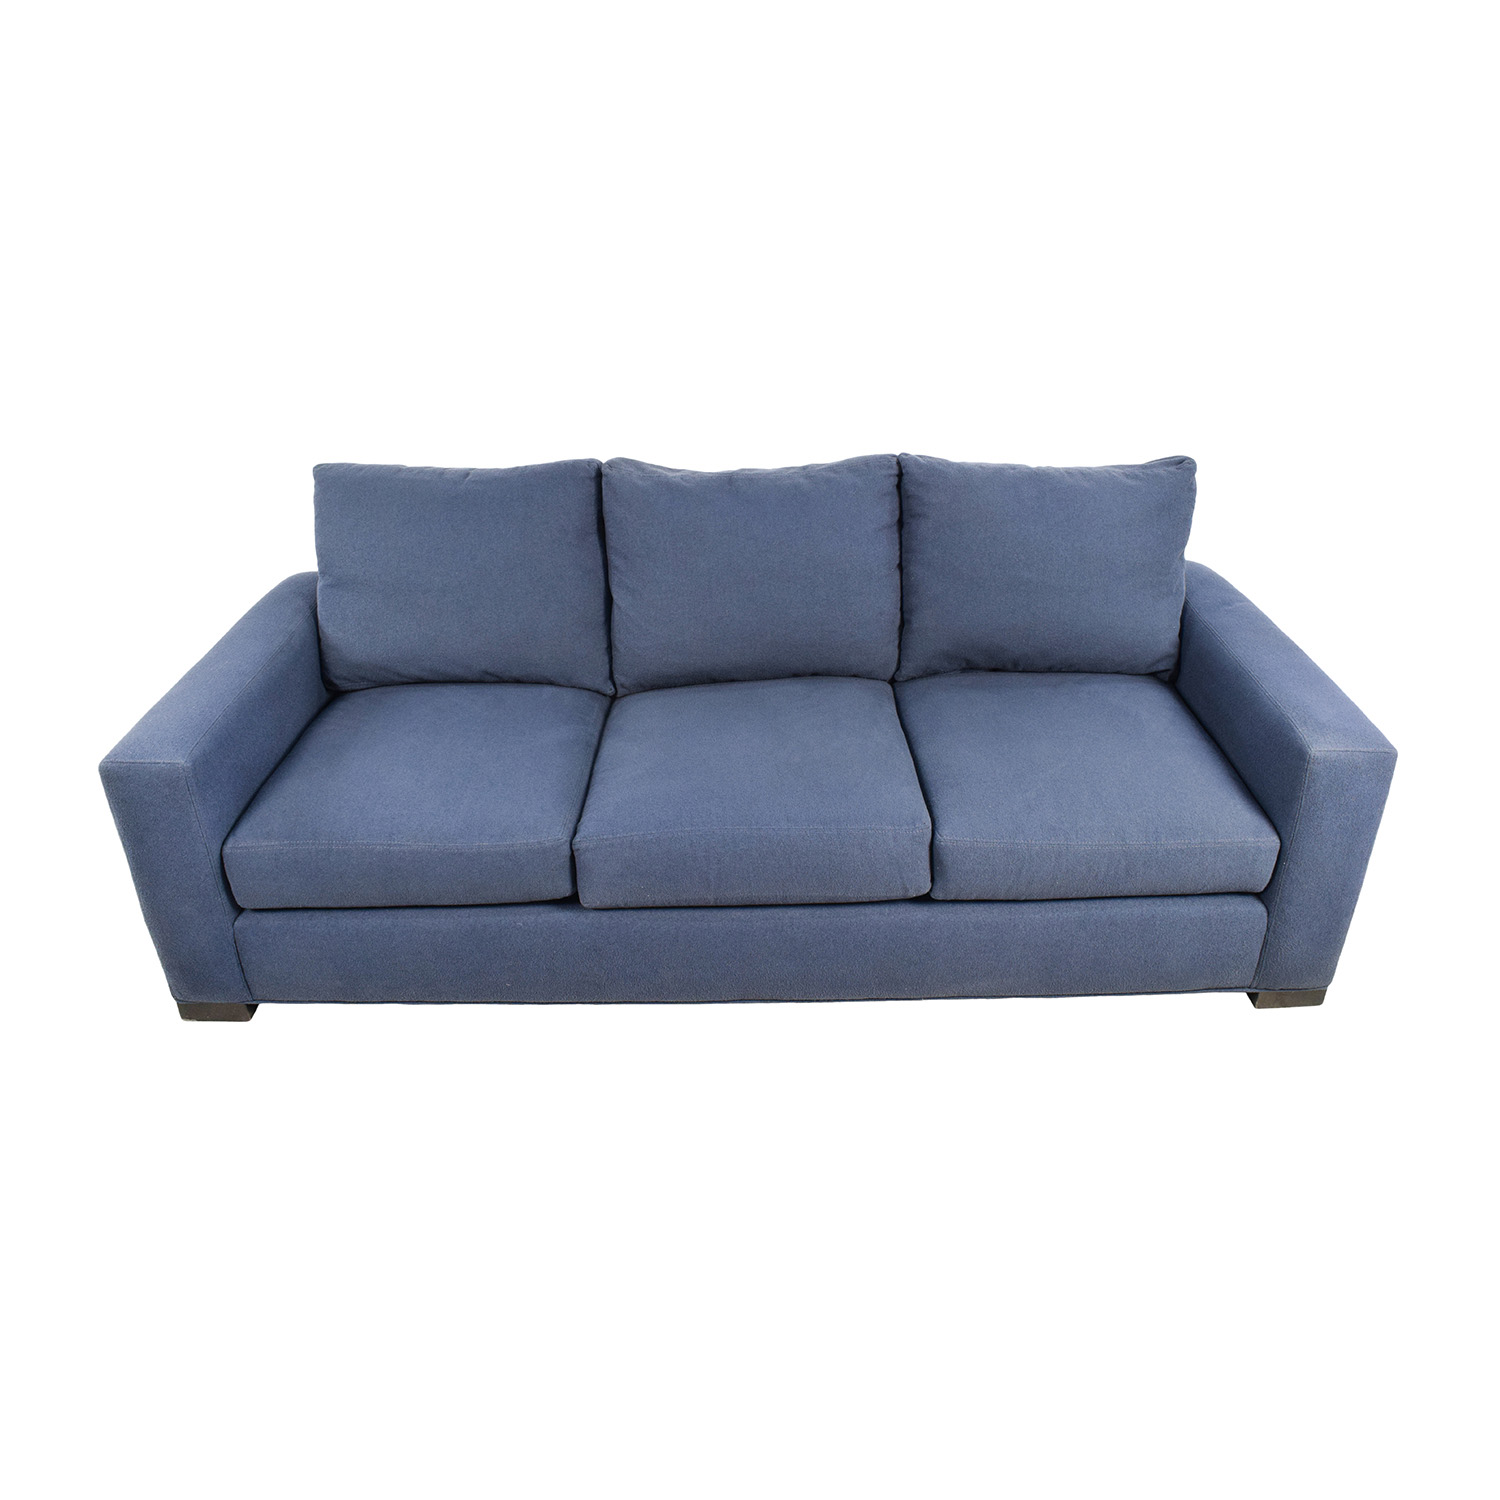 Room and Board Room & Board Metro Blue Sofa used